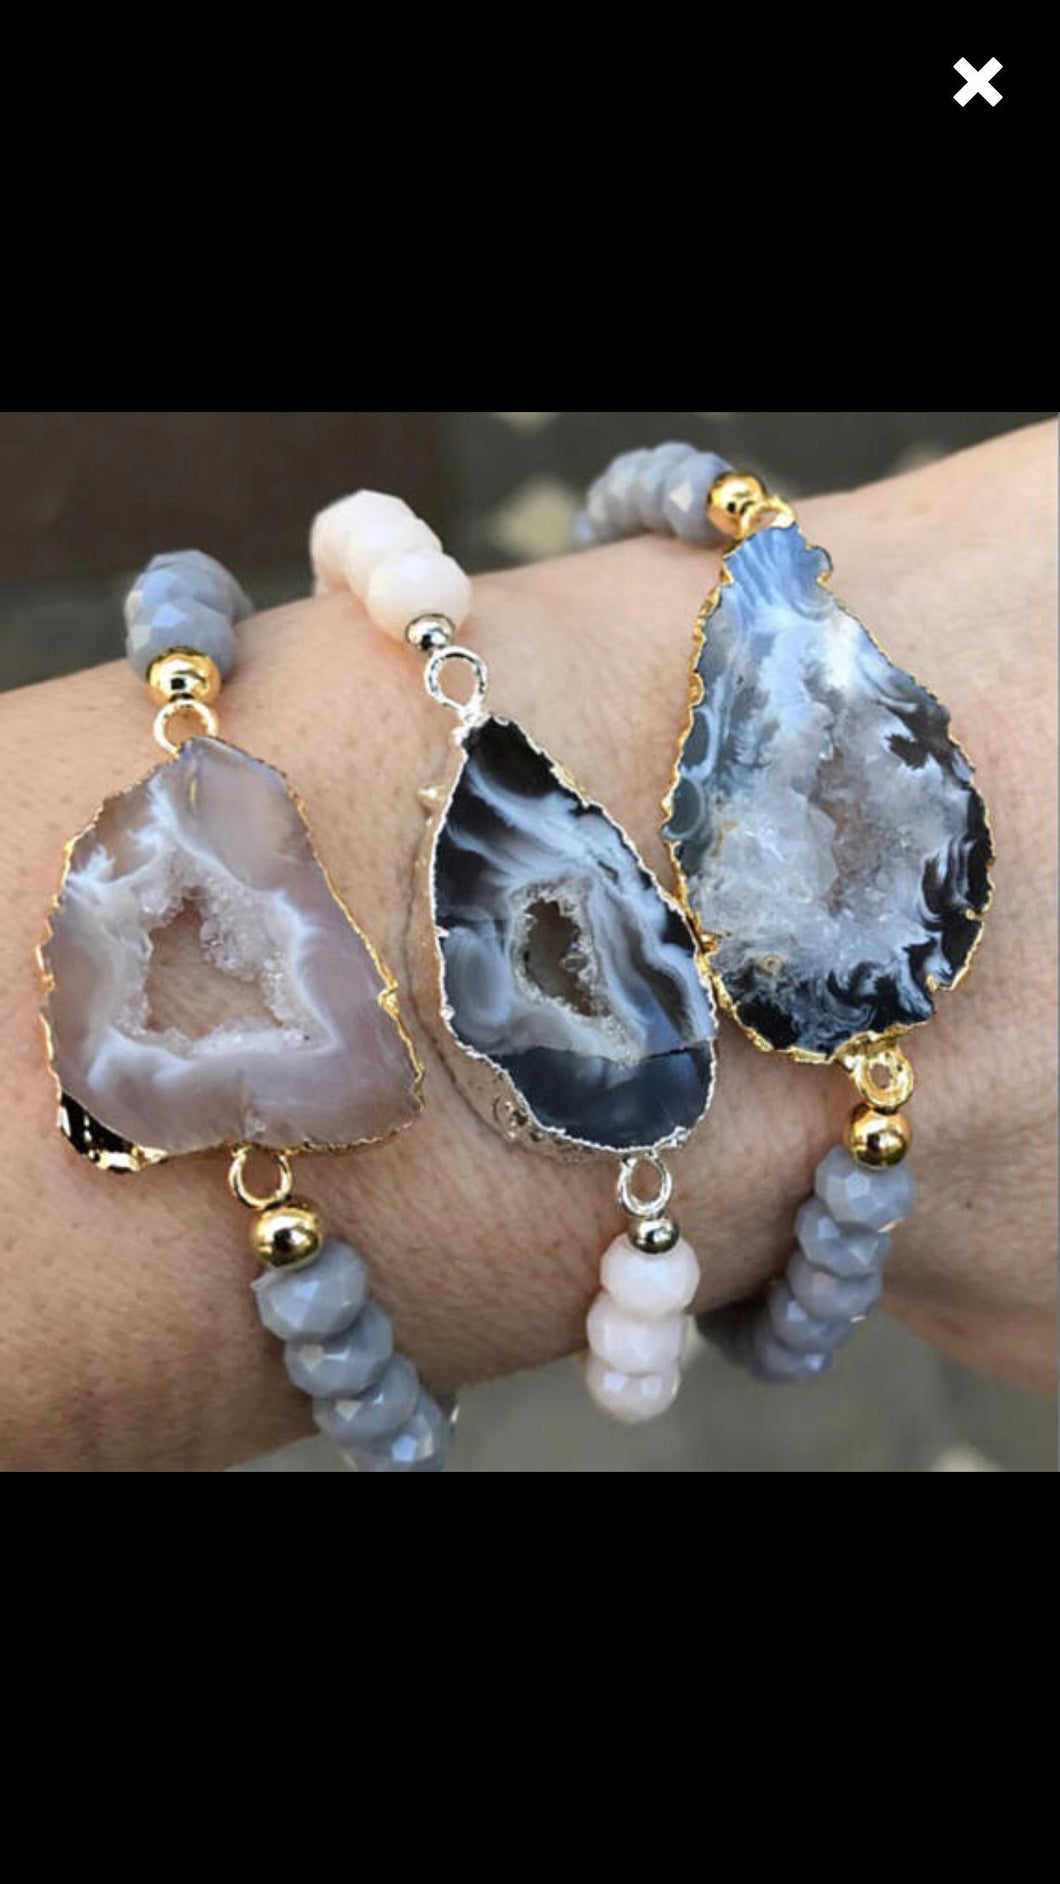 8 silver geode with silver coating and ivory beads bracelets